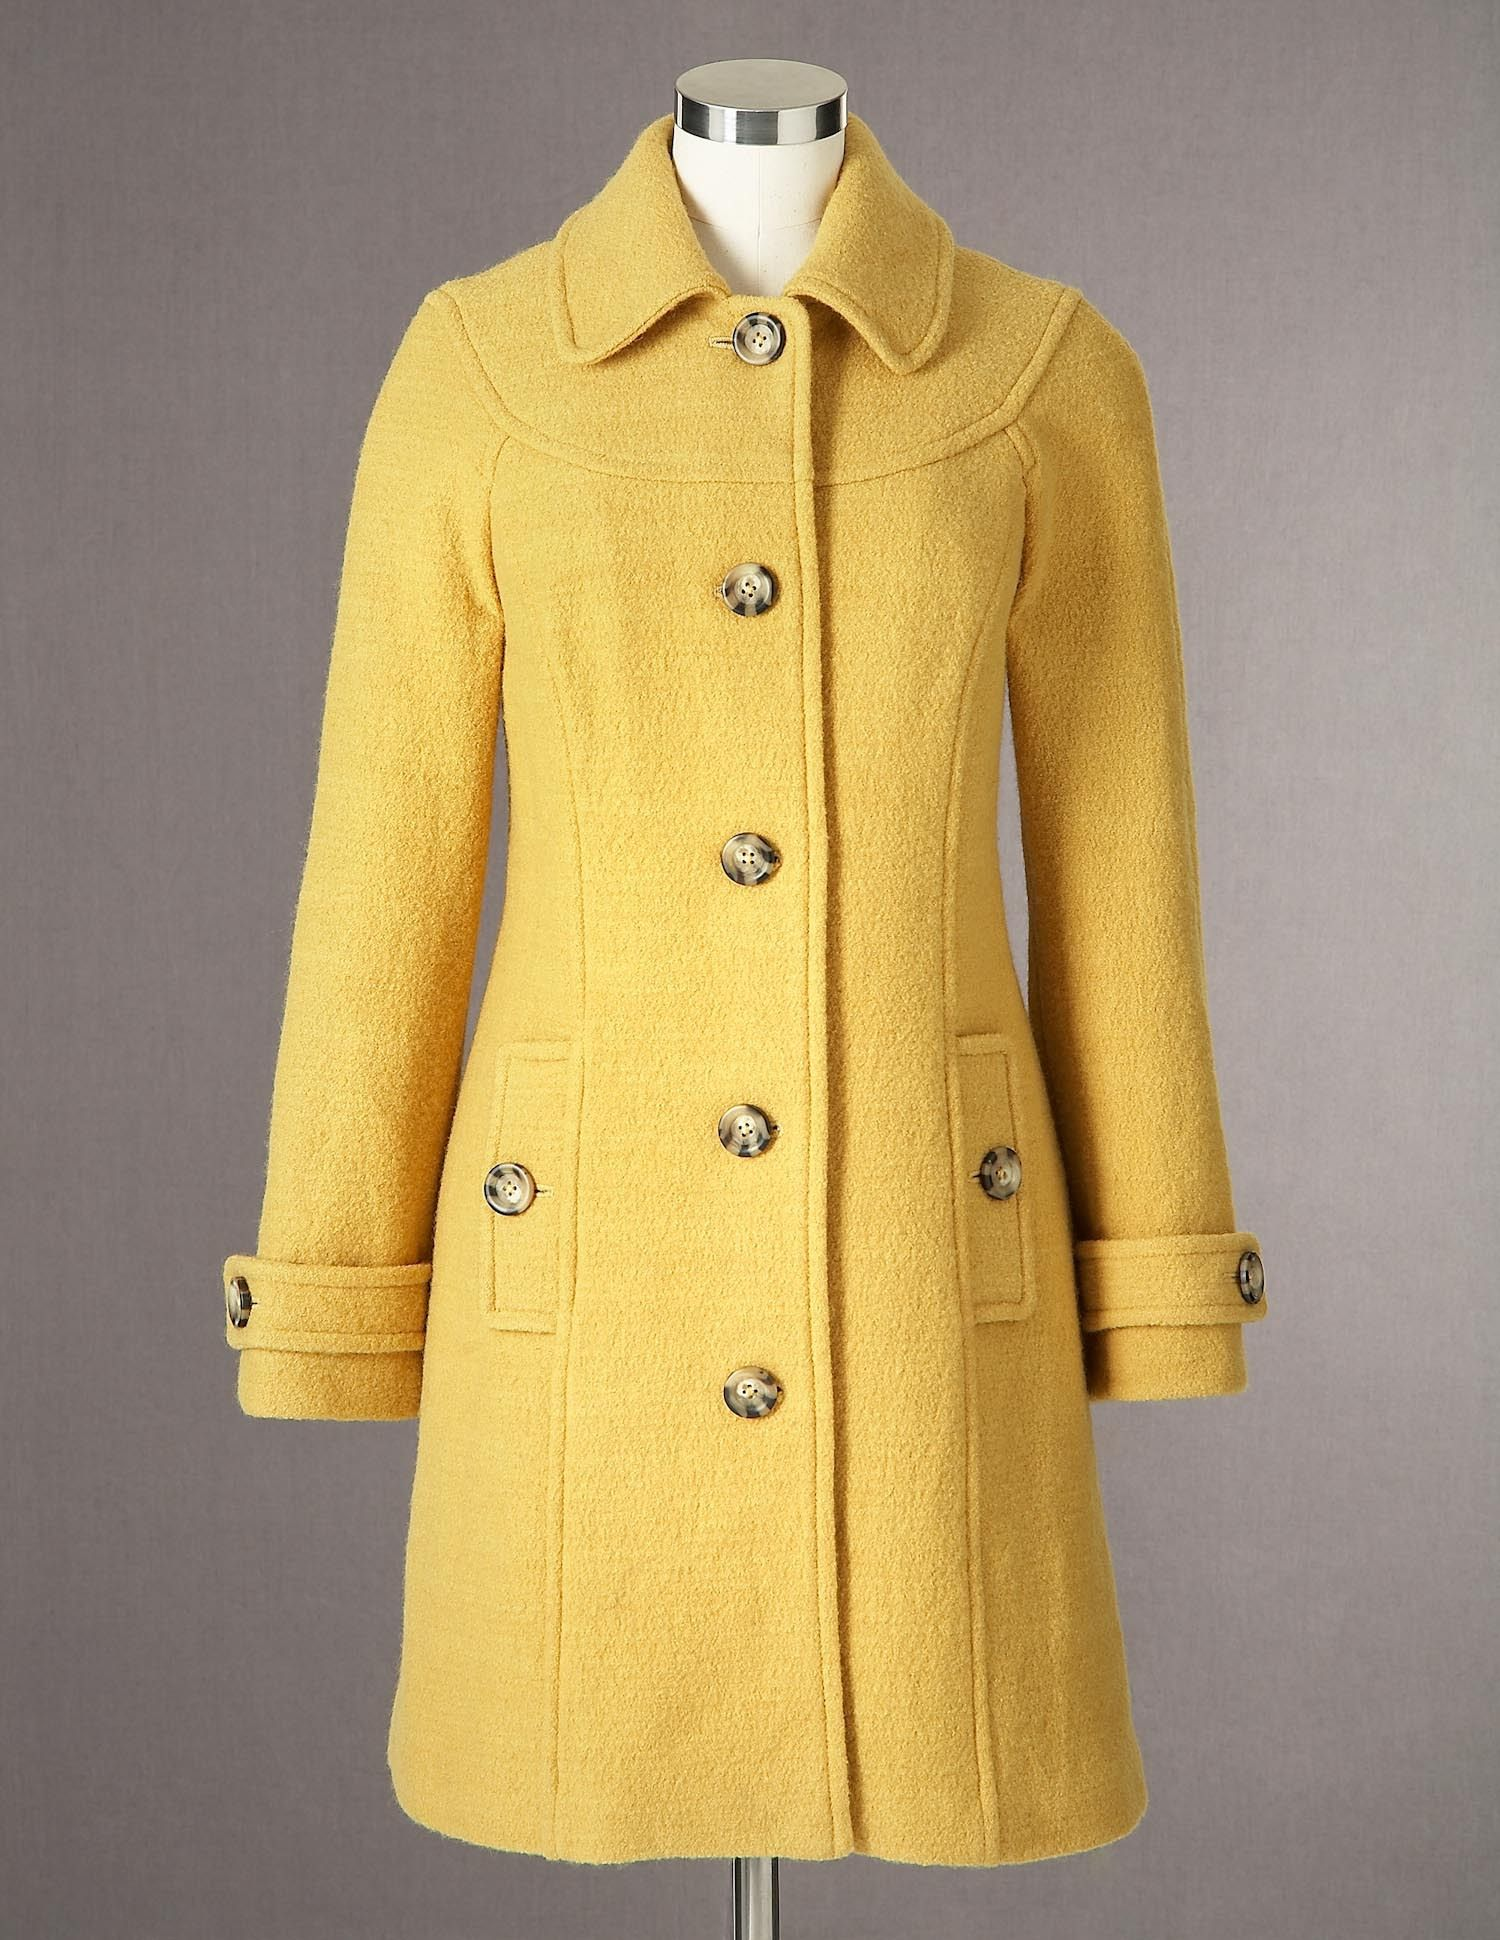 Boiled Wool Coat WE357 Coats at Boden | Wear | Pinterest | Coats ...